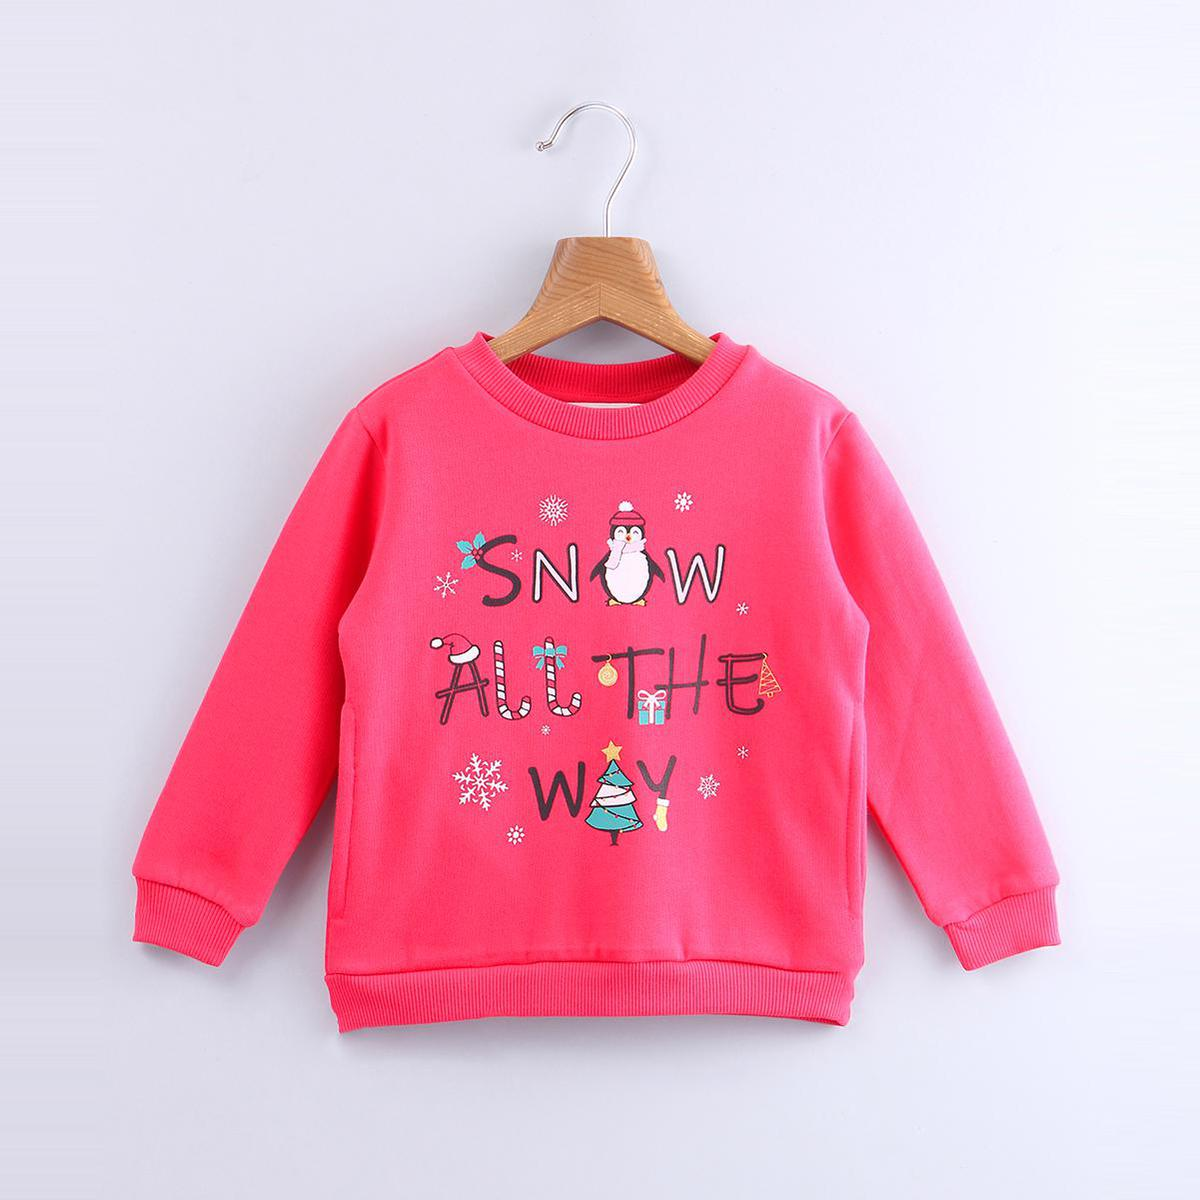 Beebay - Red Colored Snow All The Way Cotton Sweatshirt For Kids Girls